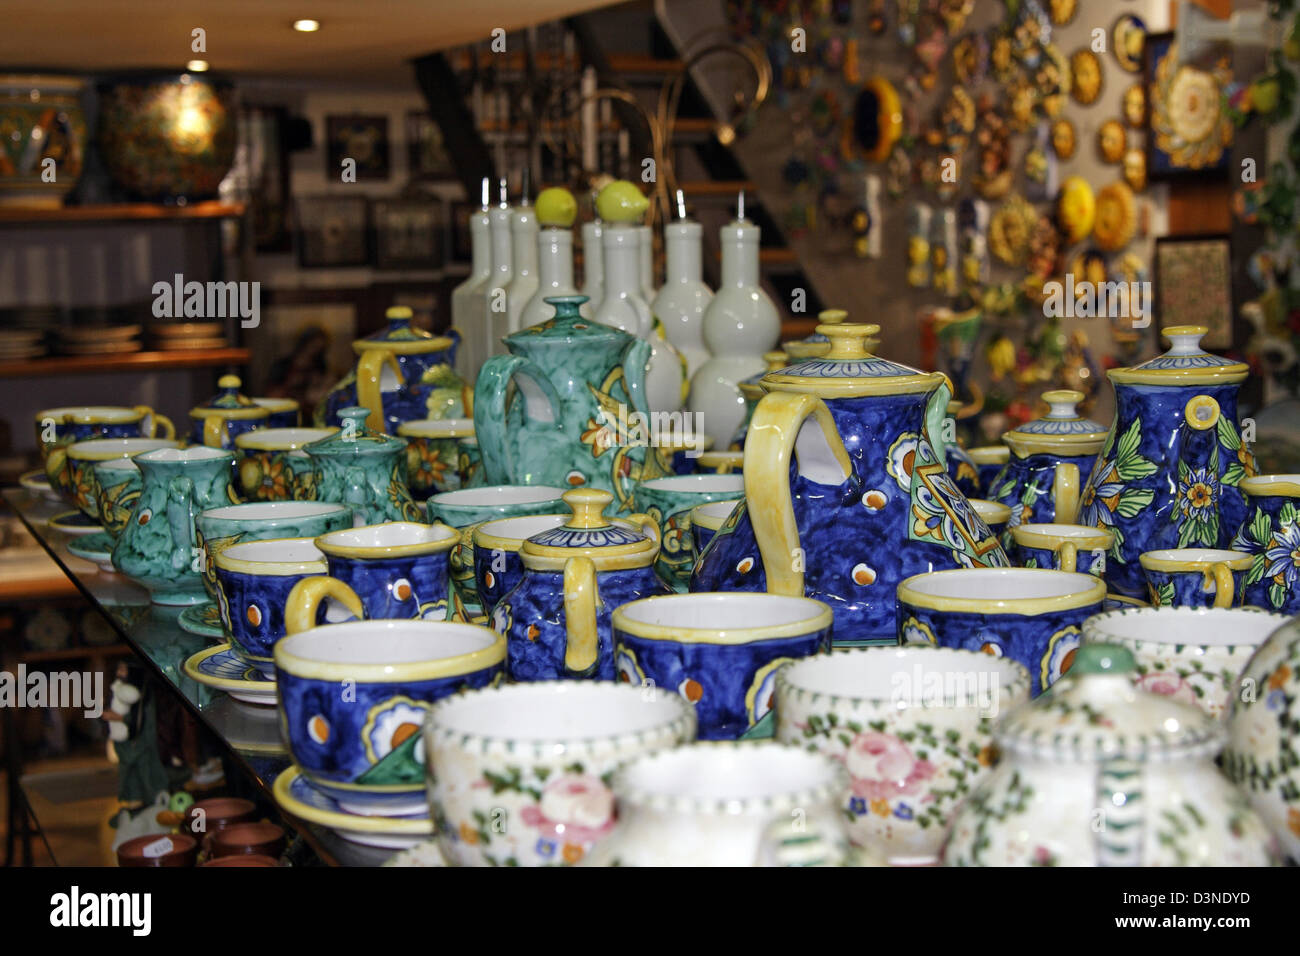 ceramic plates on sale in stockfotos ceramic plates on sale in bilder alamy. Black Bedroom Furniture Sets. Home Design Ideas